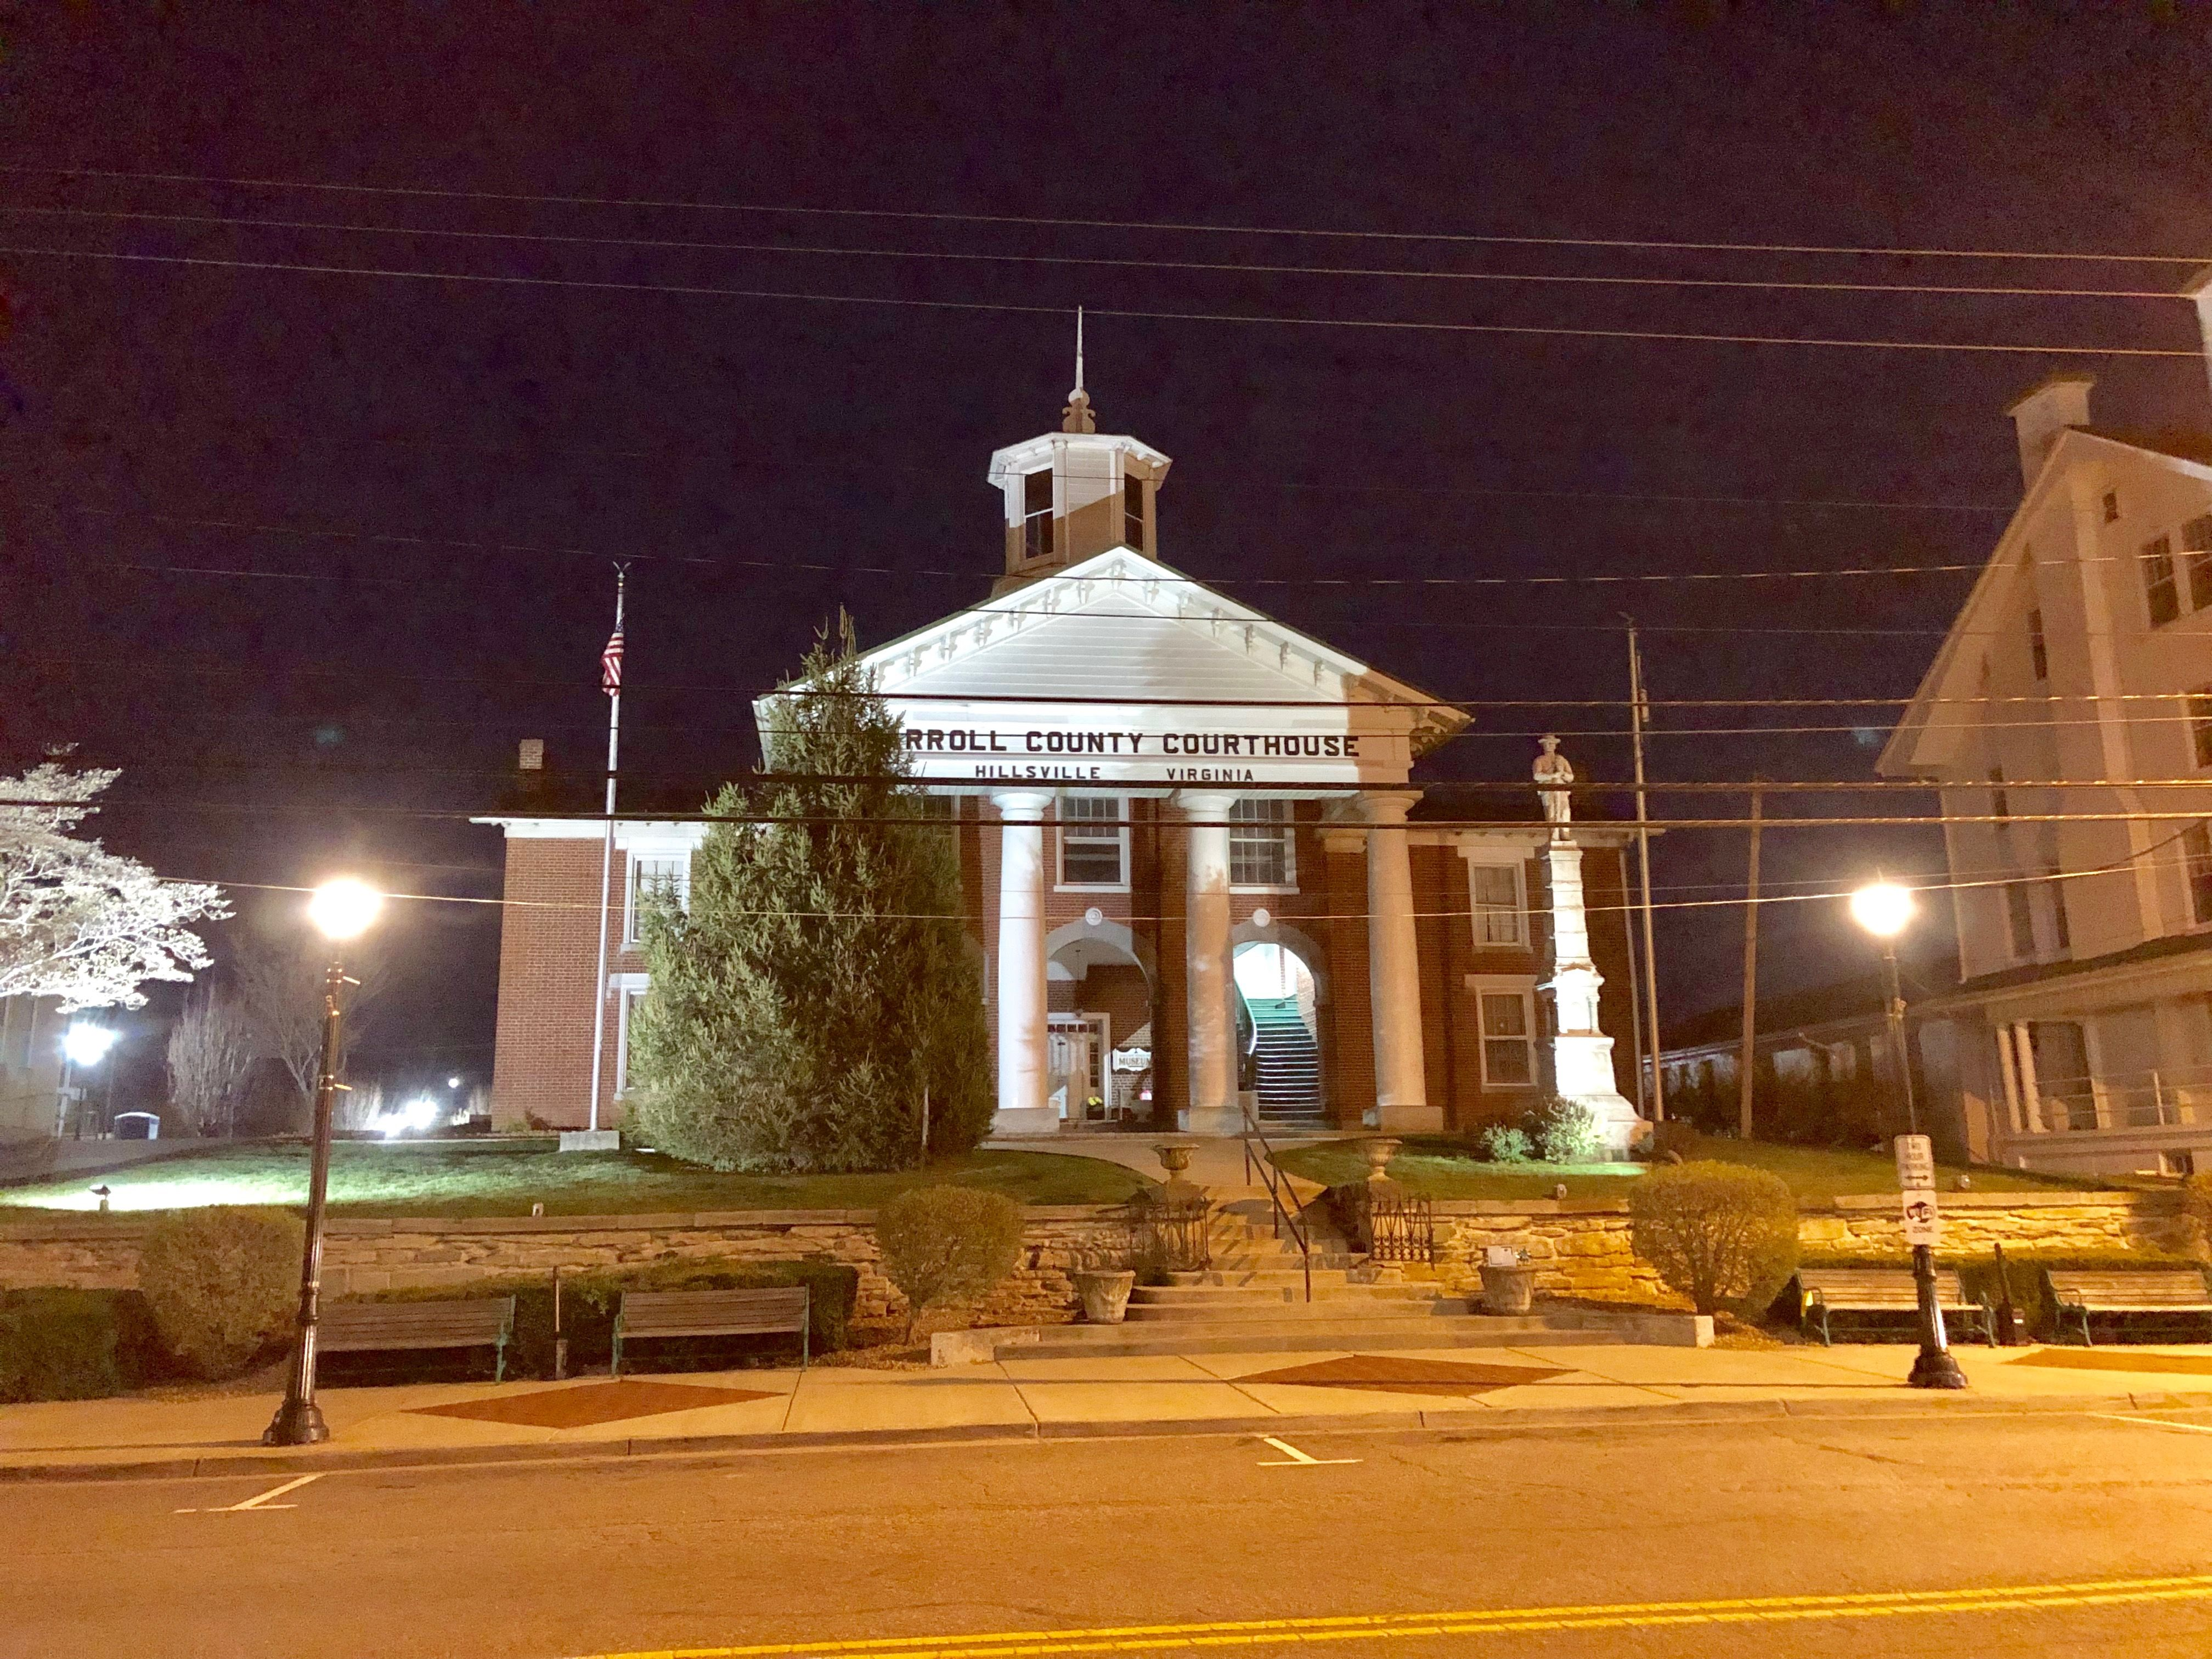 Historic Carroll County Courthouse in Hillsville, Virginia